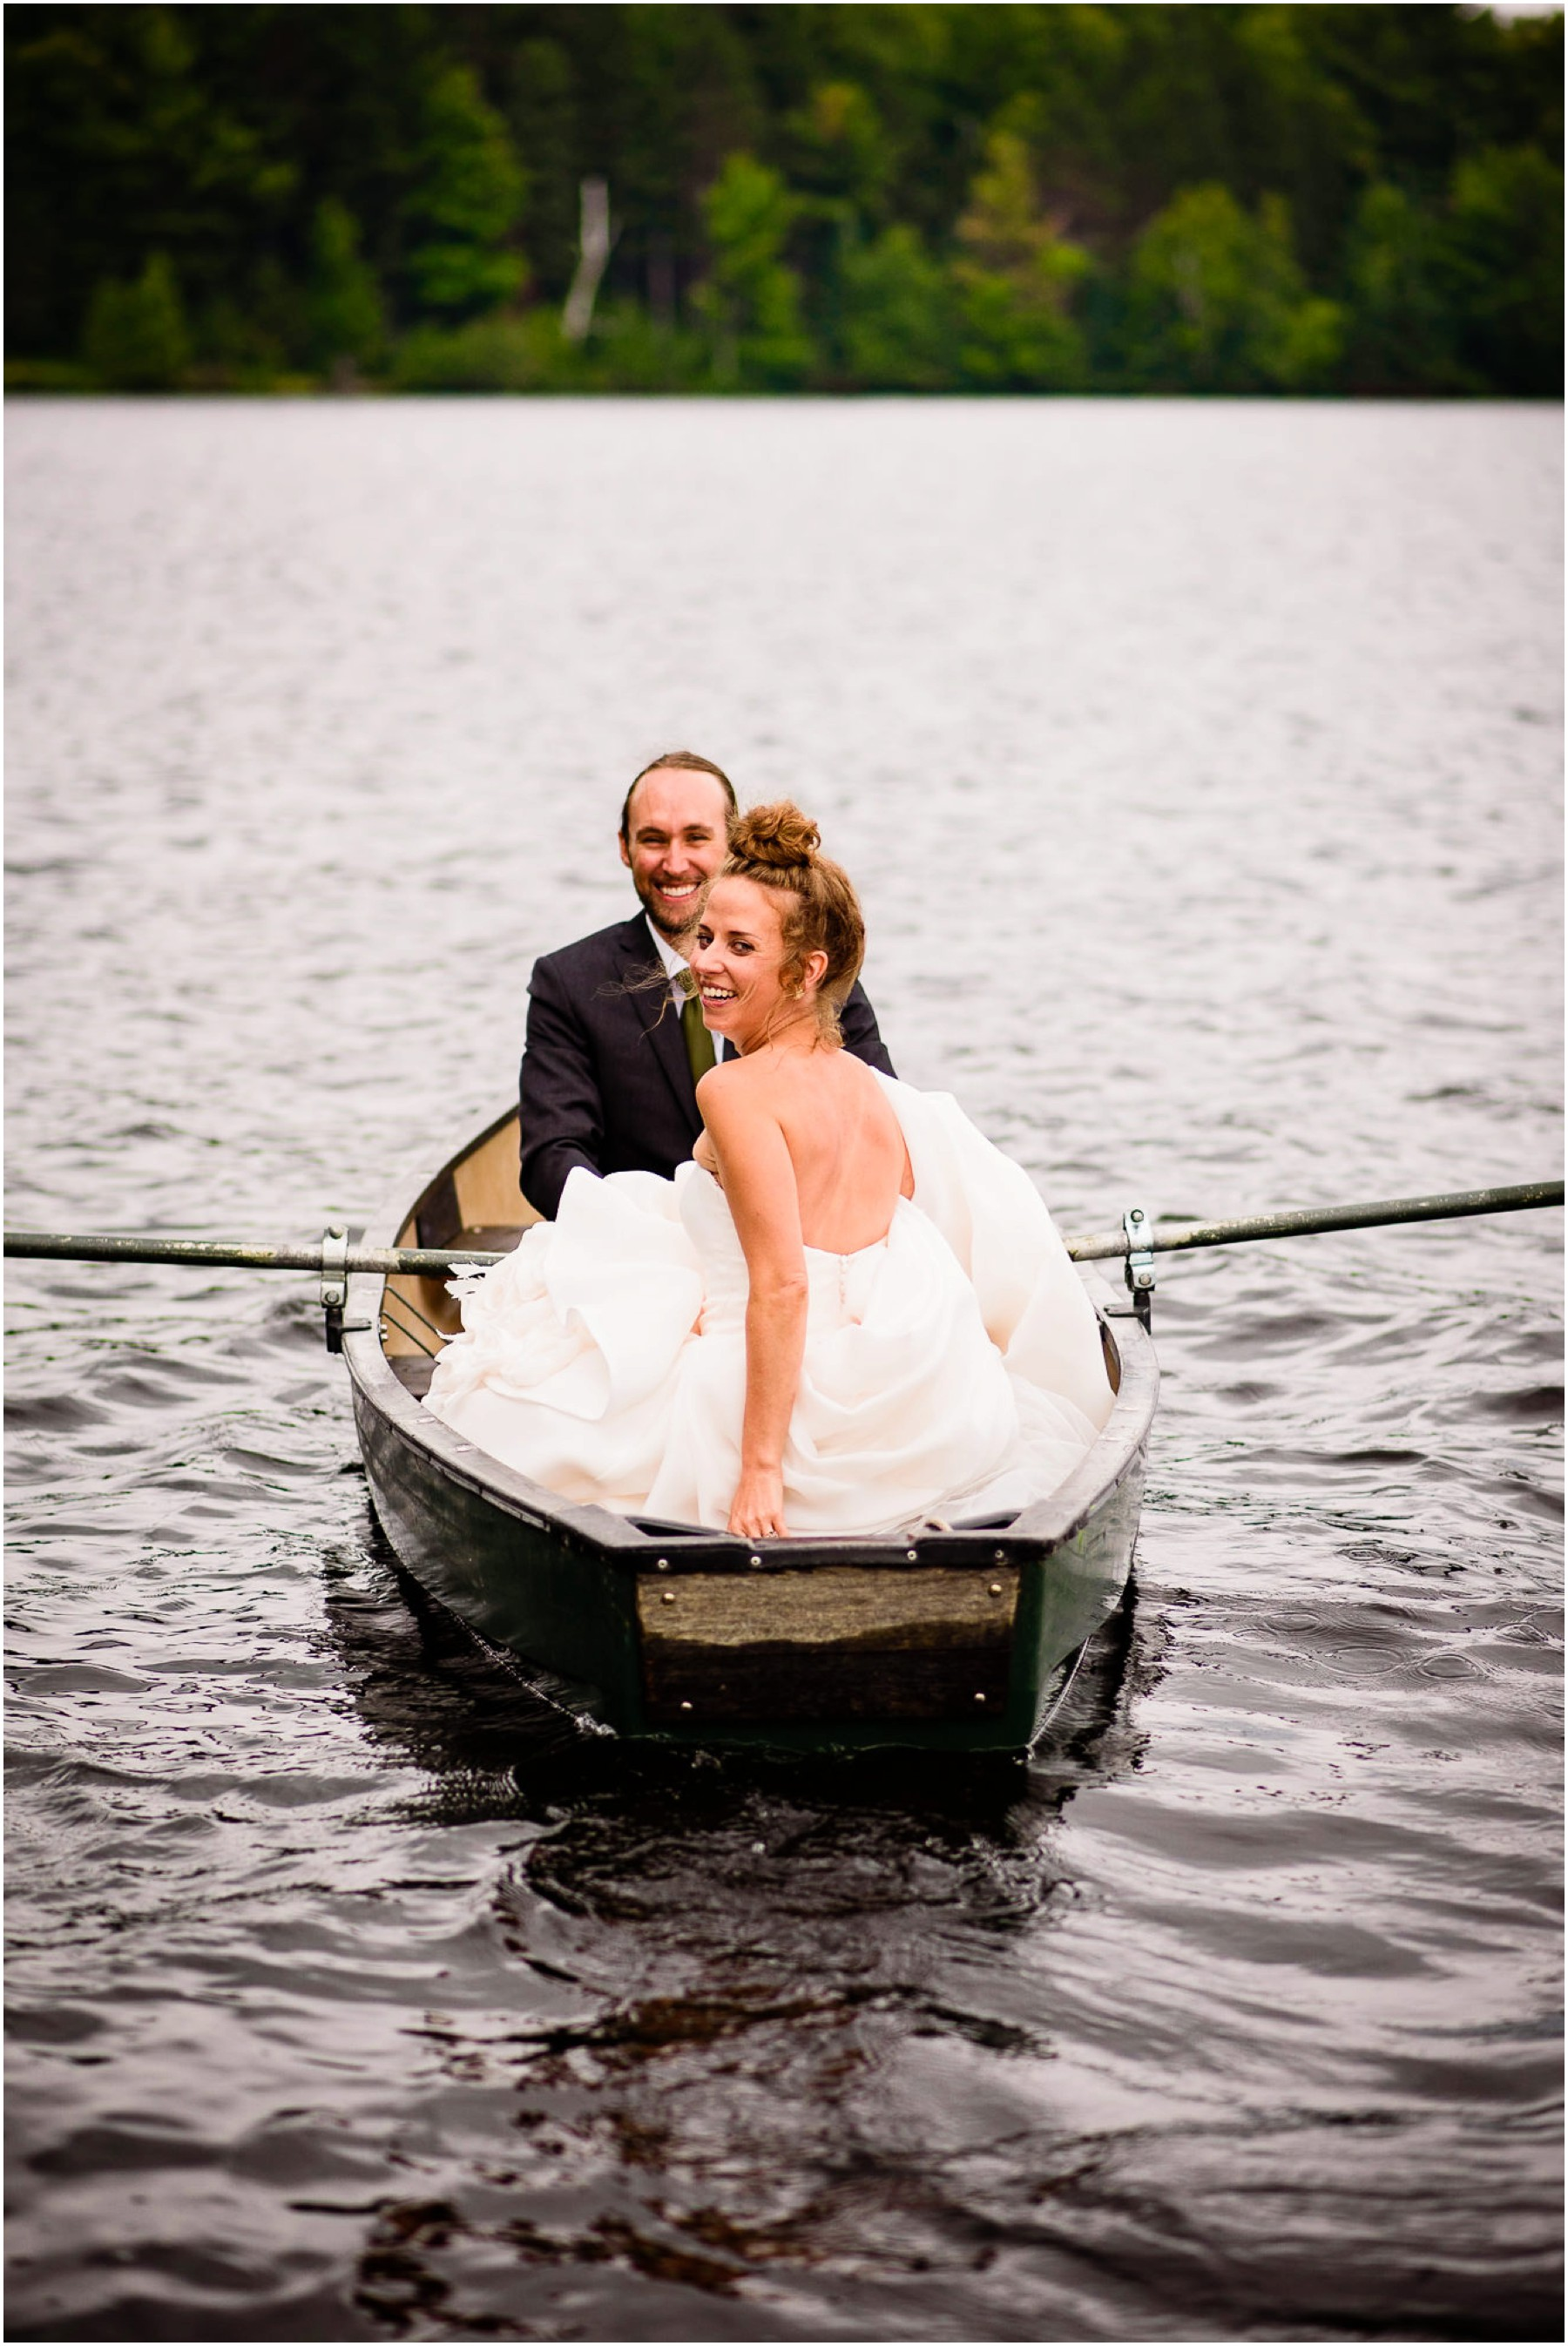 Wisconsin Bride and groom on Lake Canoe after Ceremony